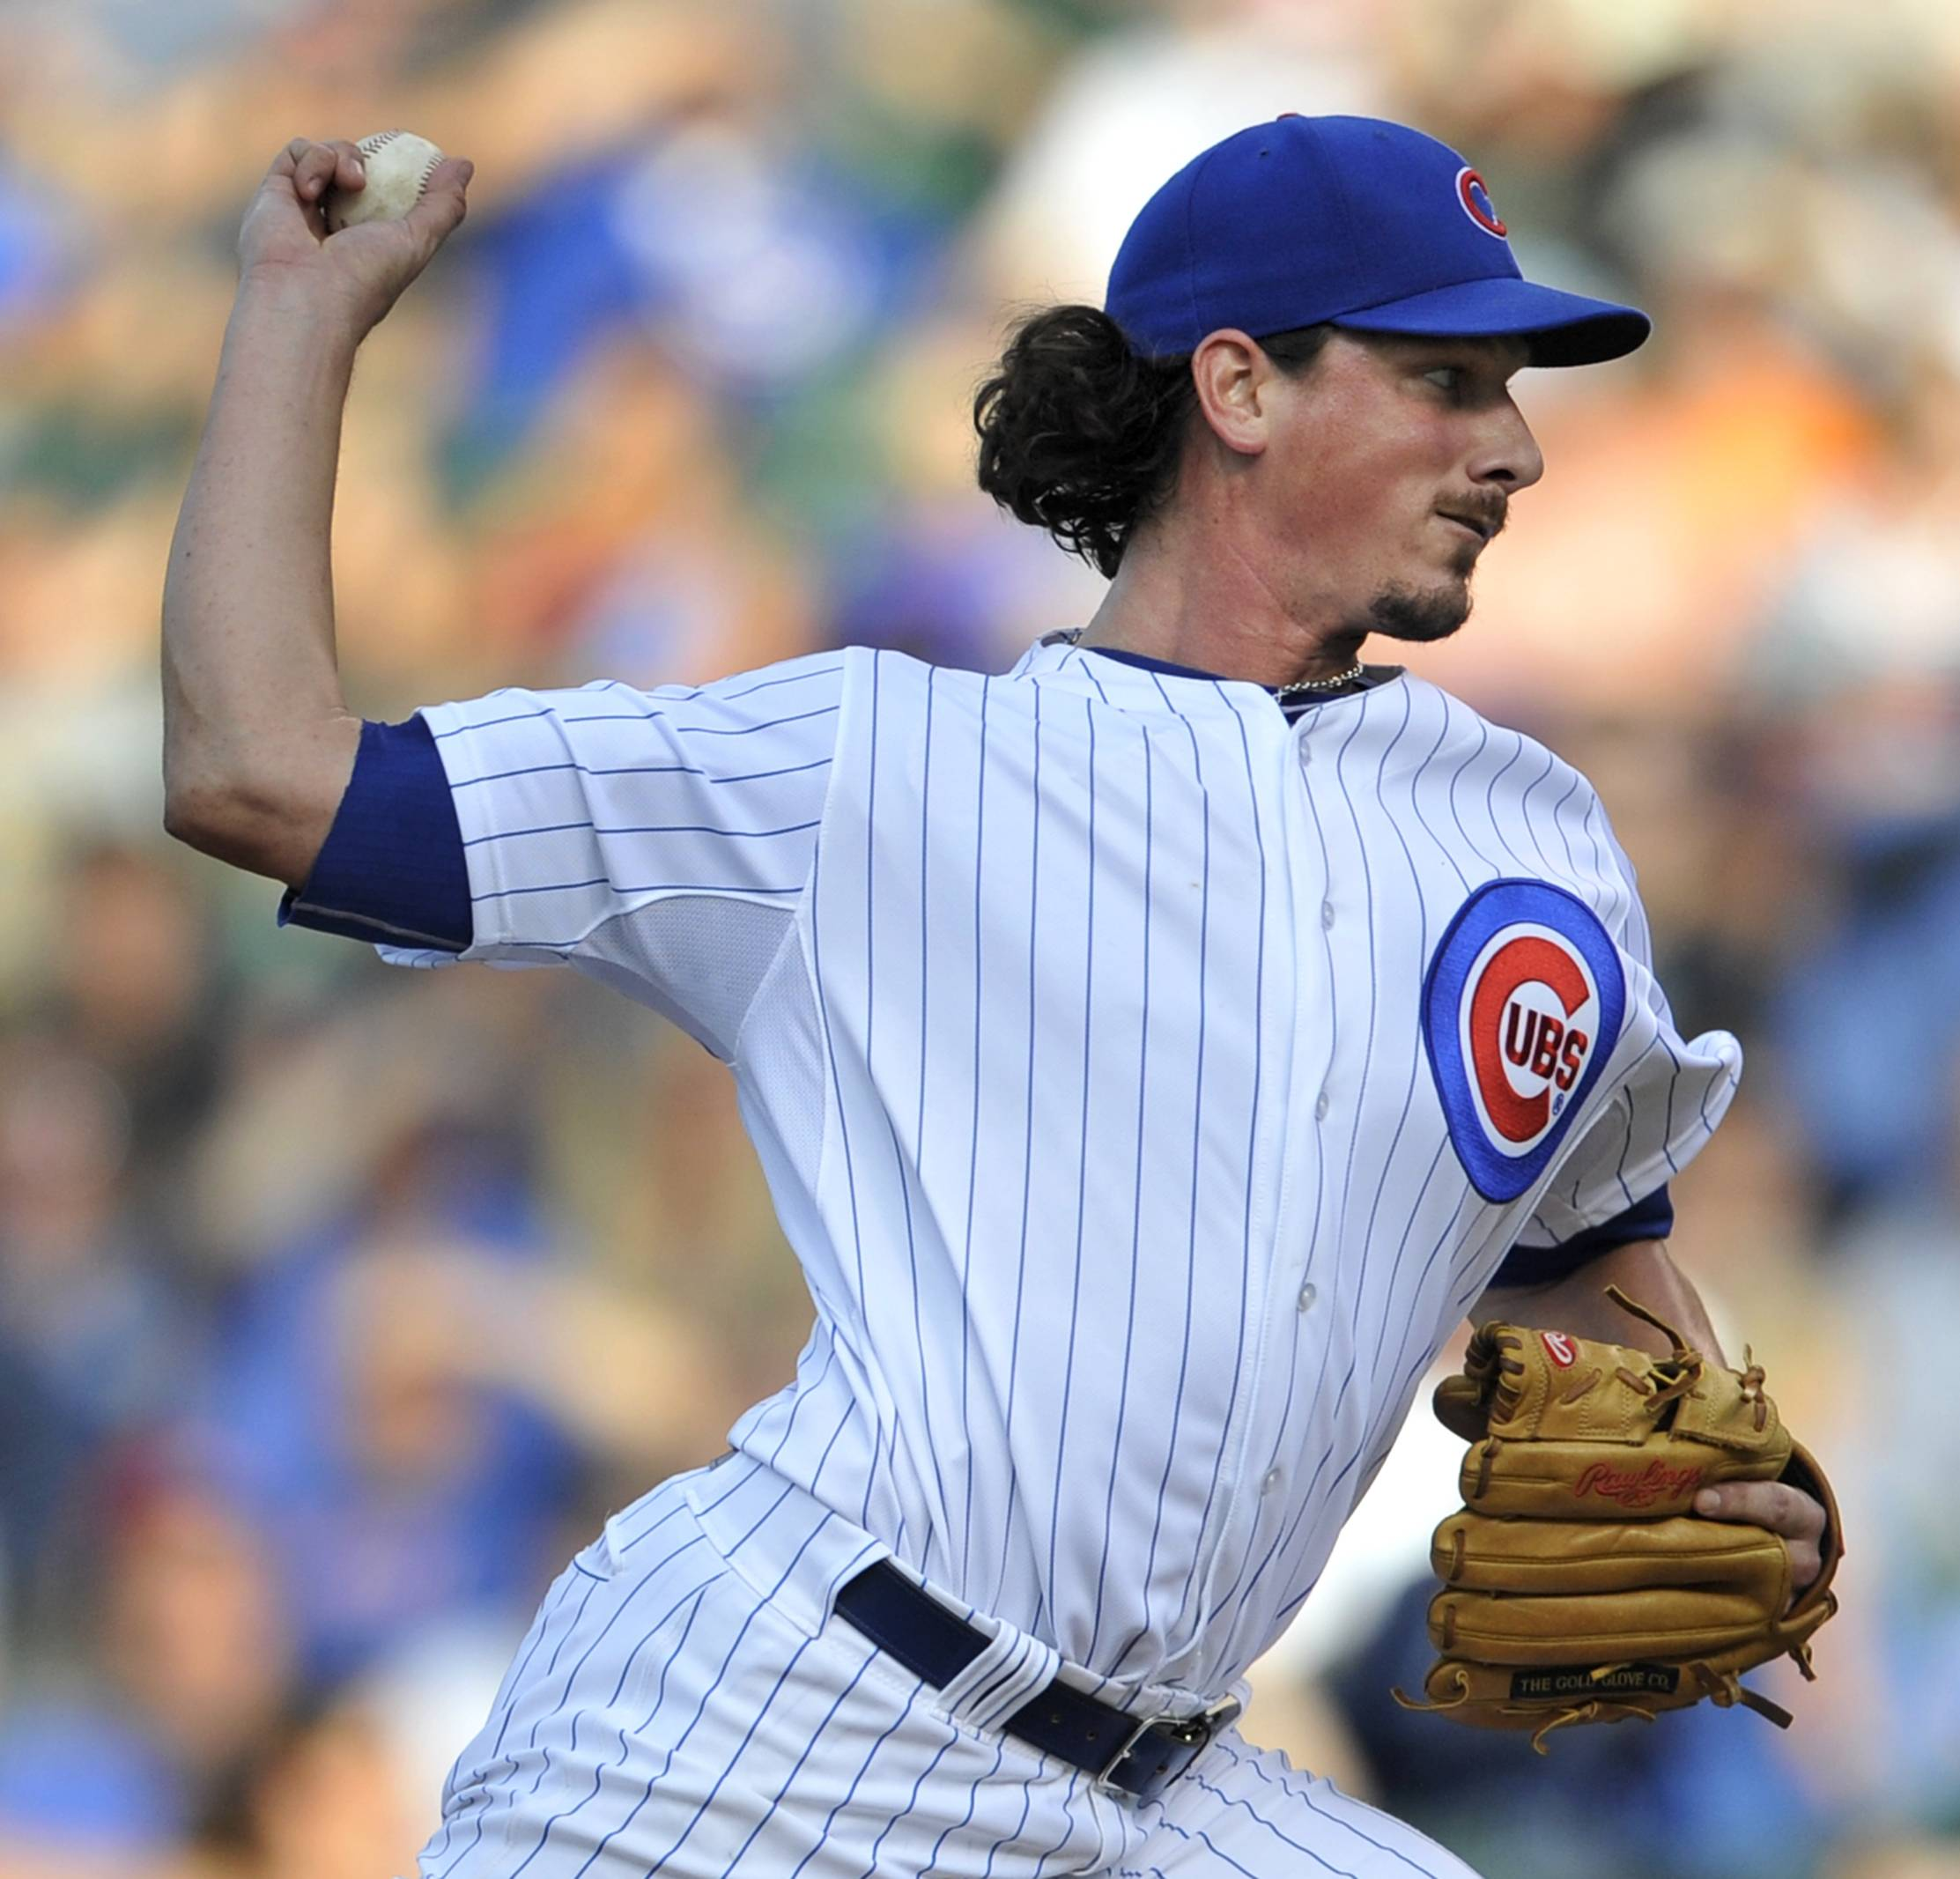 Cubs starter Jeff Samardzija, reportedly on his way to Oakland, has a 2.83 earned run average this season.